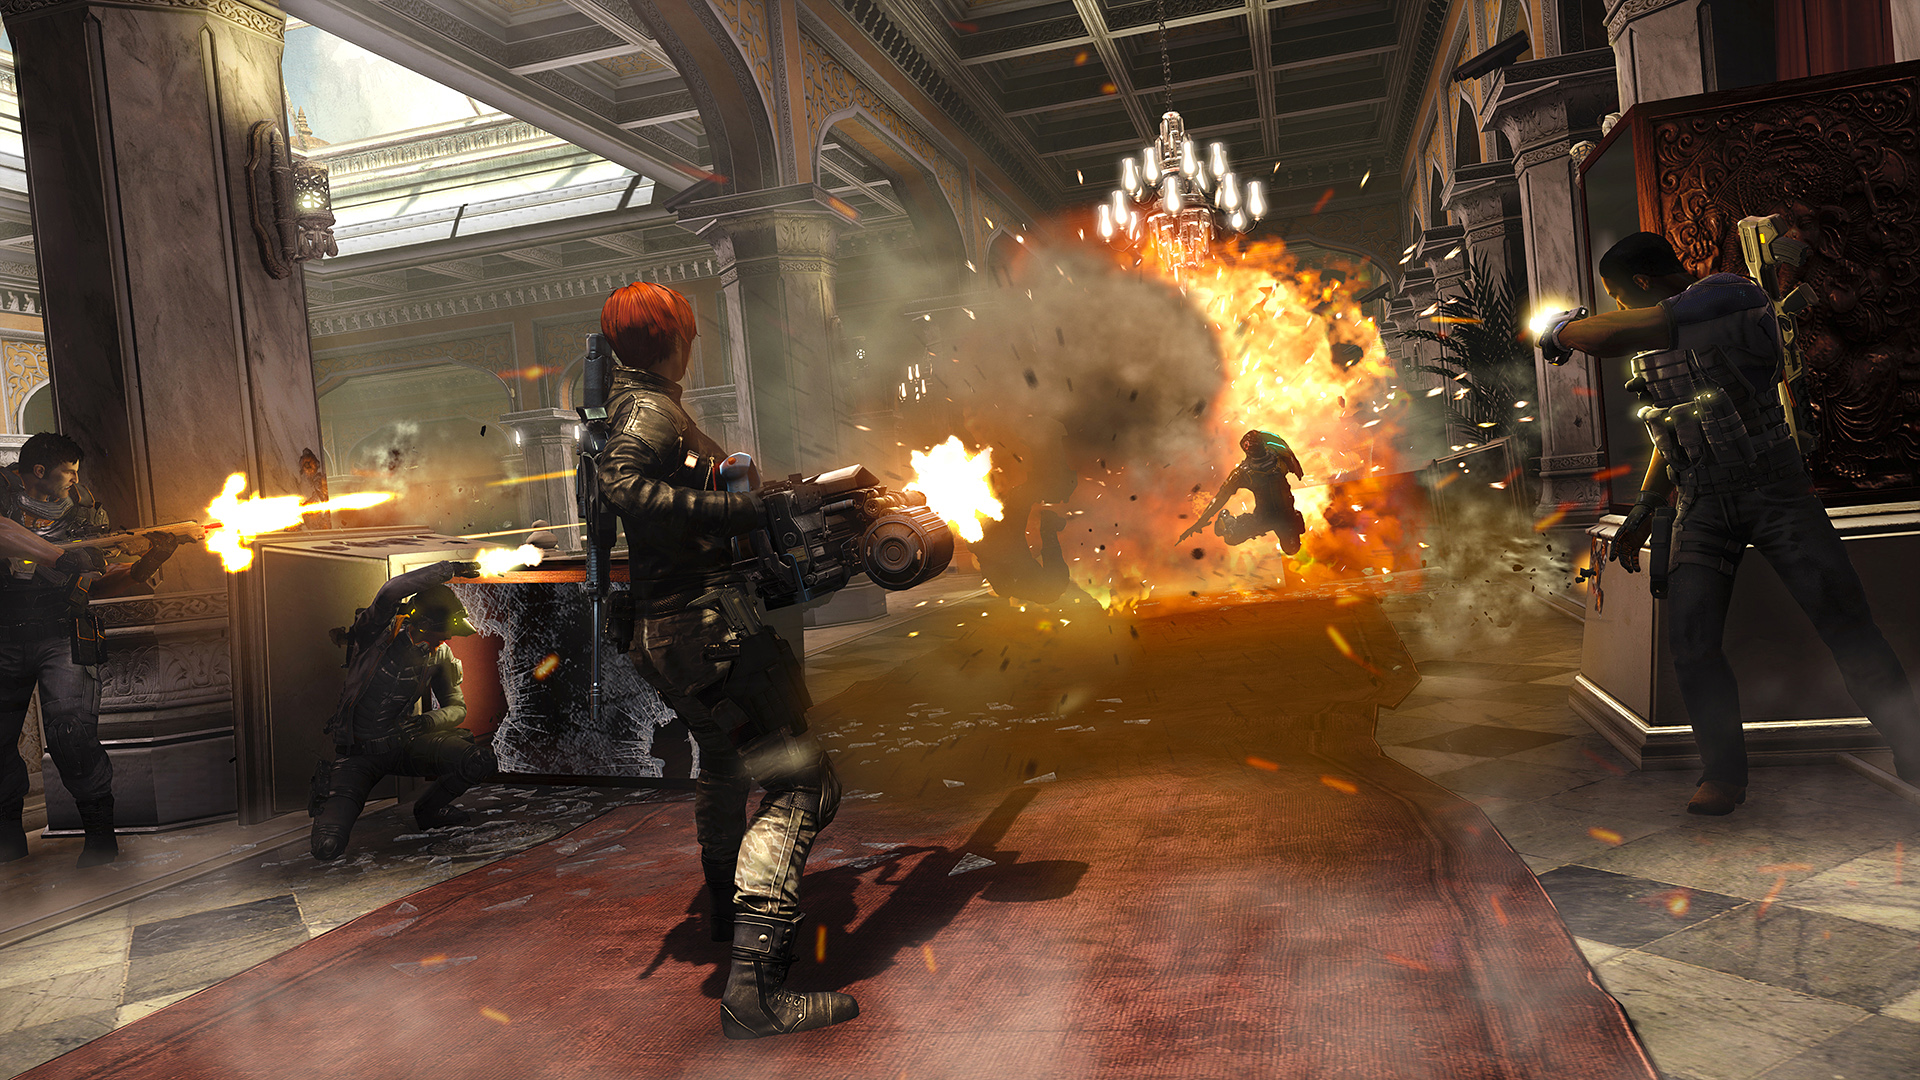 FUSE: New Screenshots Showcase Gameplay from Insomniac's ... on xbox 360 pc, xbox 360 spiele, xbox 360 internet, xbox 360 gry, xbox 360 mmorpg, xbox 360 facebook, xbox 360 software, xbox 360 juegos, xbox 360 series, xbox 360 wallpapers, xbox 360 online, xbox 360 racing games, xbox 360 google, xbox 360 windows, xbox 360 gam, xbox 360 hardware, xbox 360 gow, xbox 360 brasil, xbox 360 home, xbox 360 android,